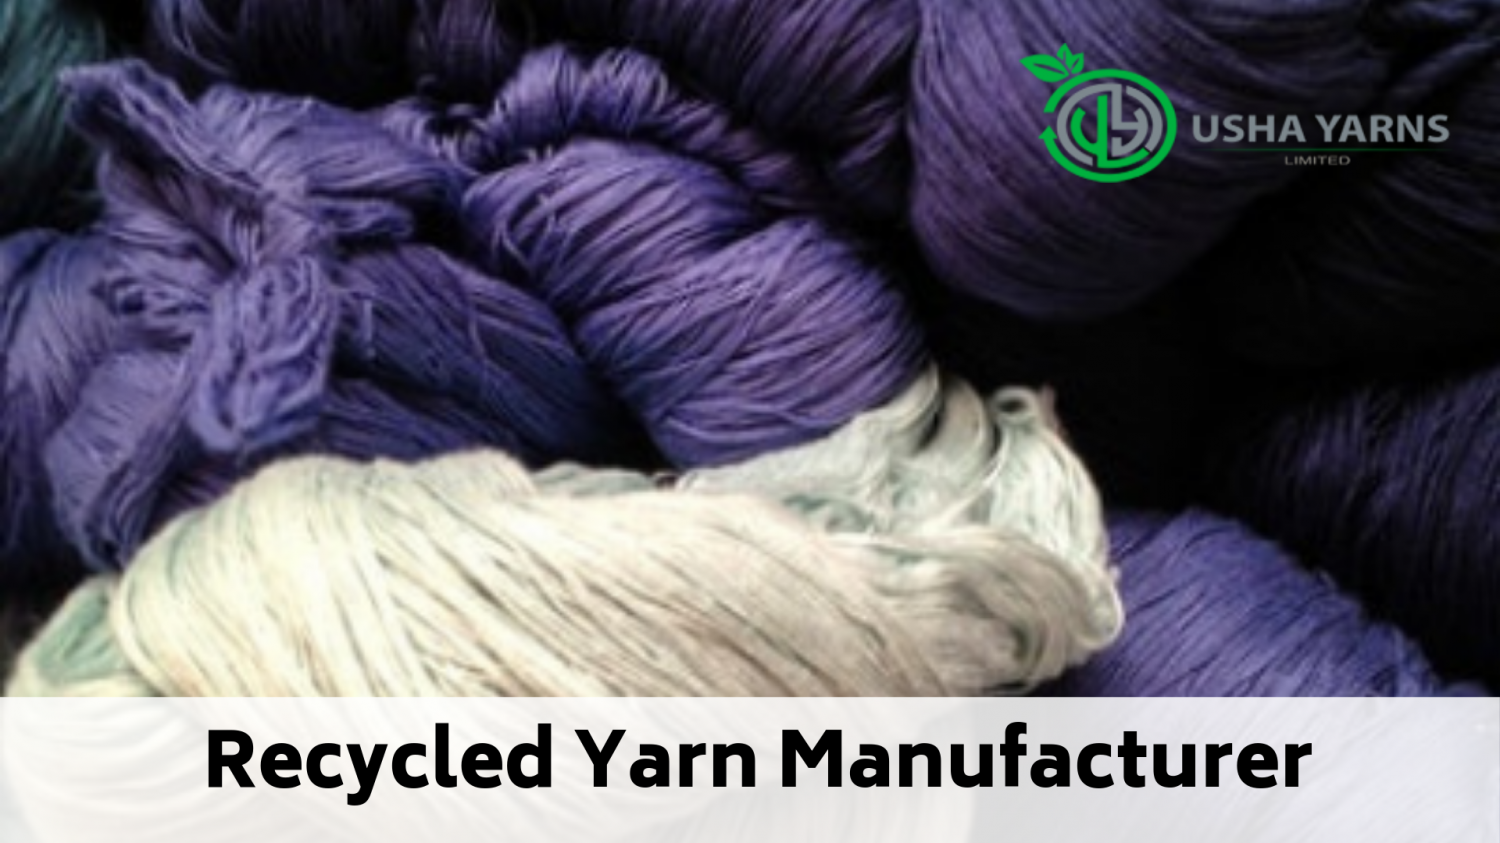 Sustainable Recycled Yarn Manufacturer Infographic